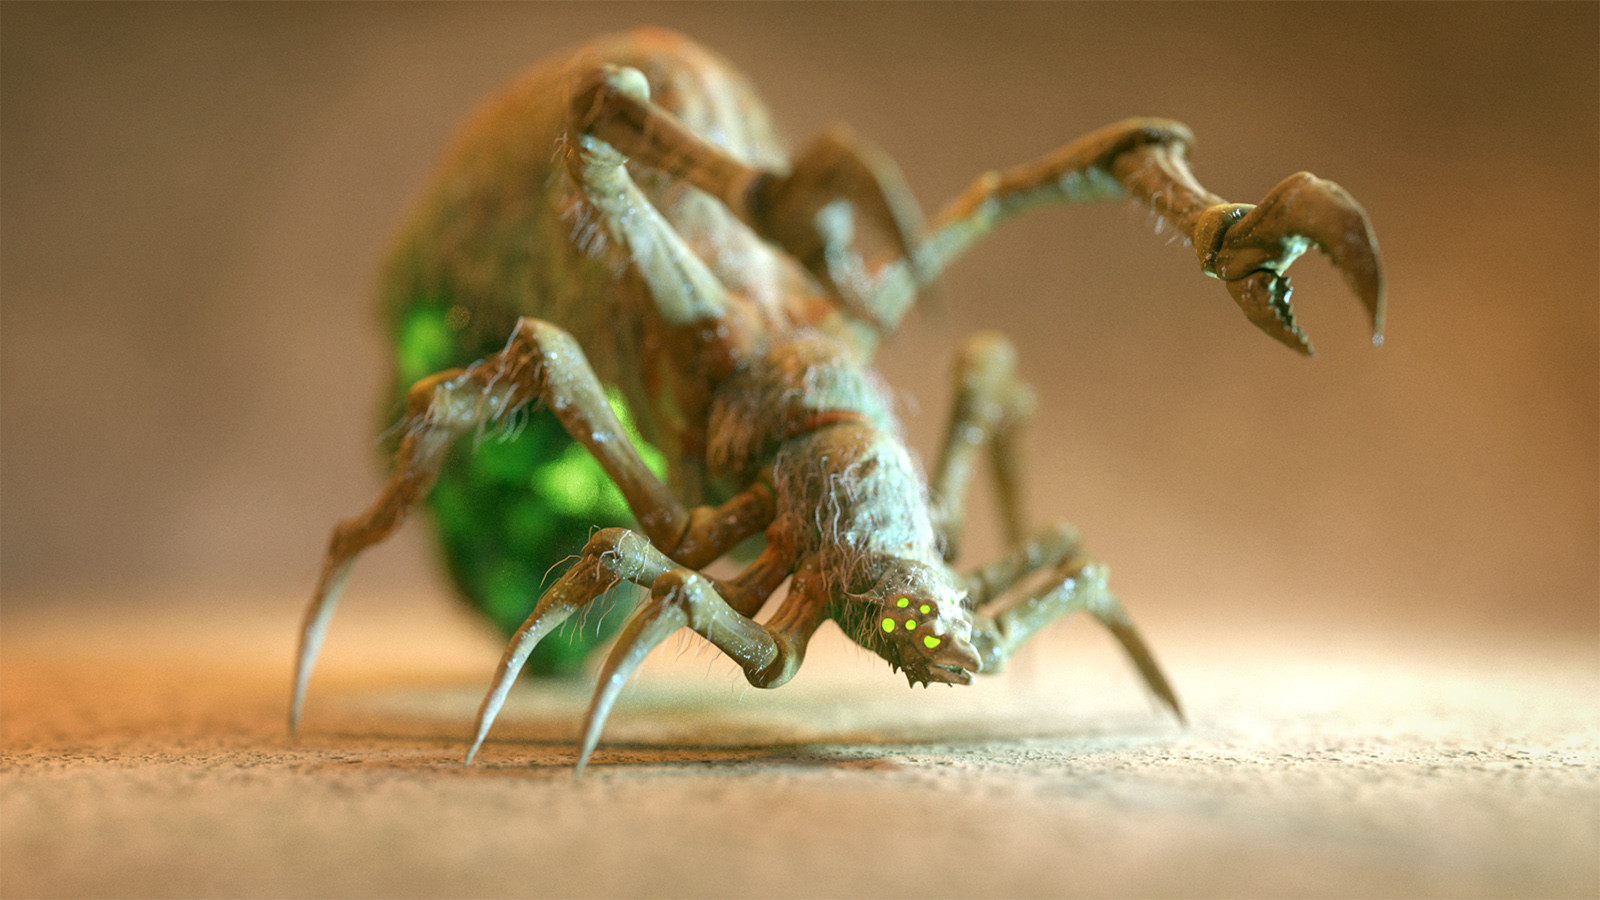 ZBrush speedsculpt - Creepy insect